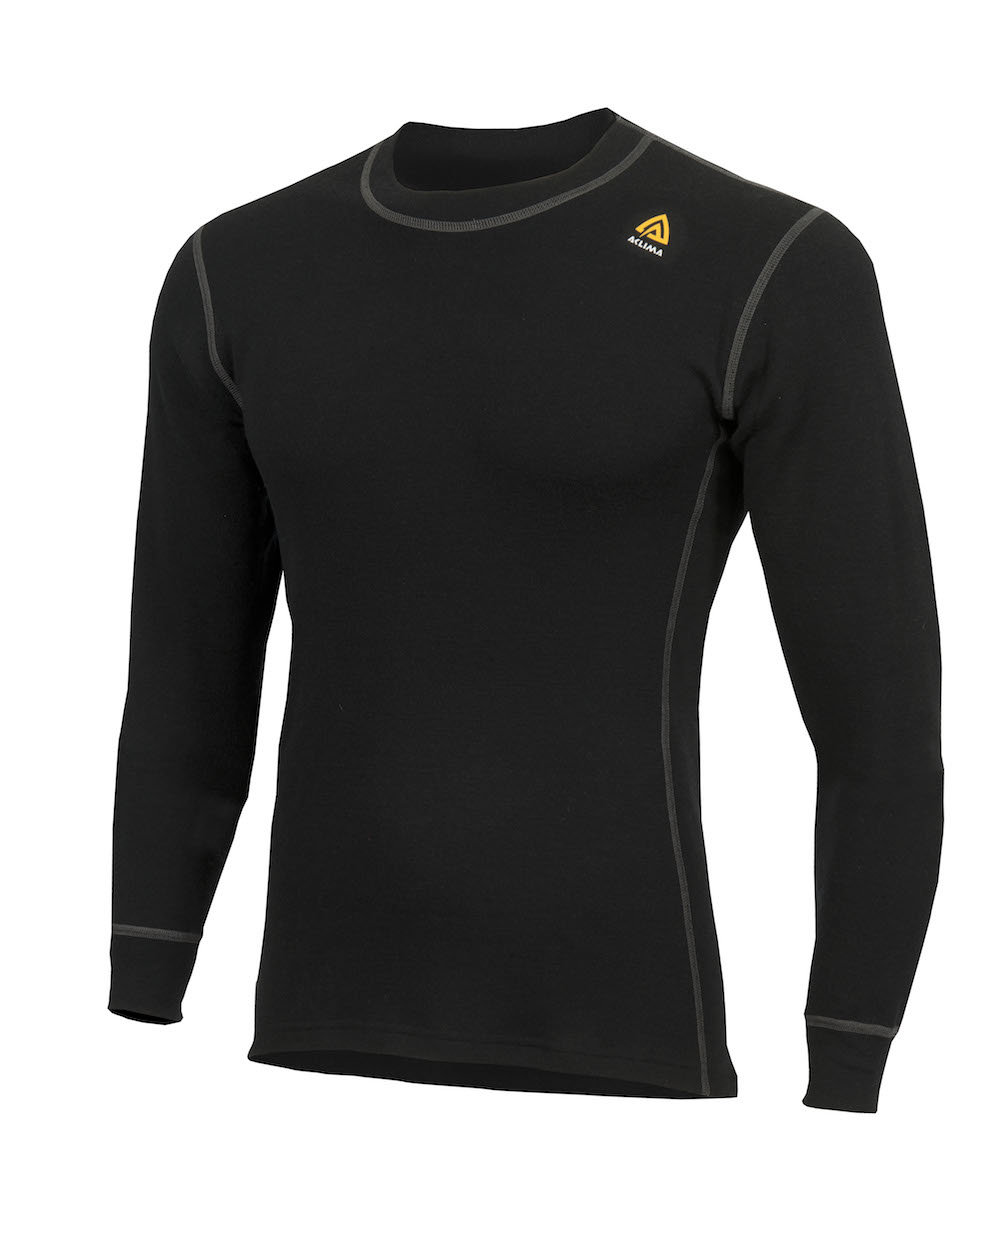 Aclima Warm Wool Crew Neck Jet Black